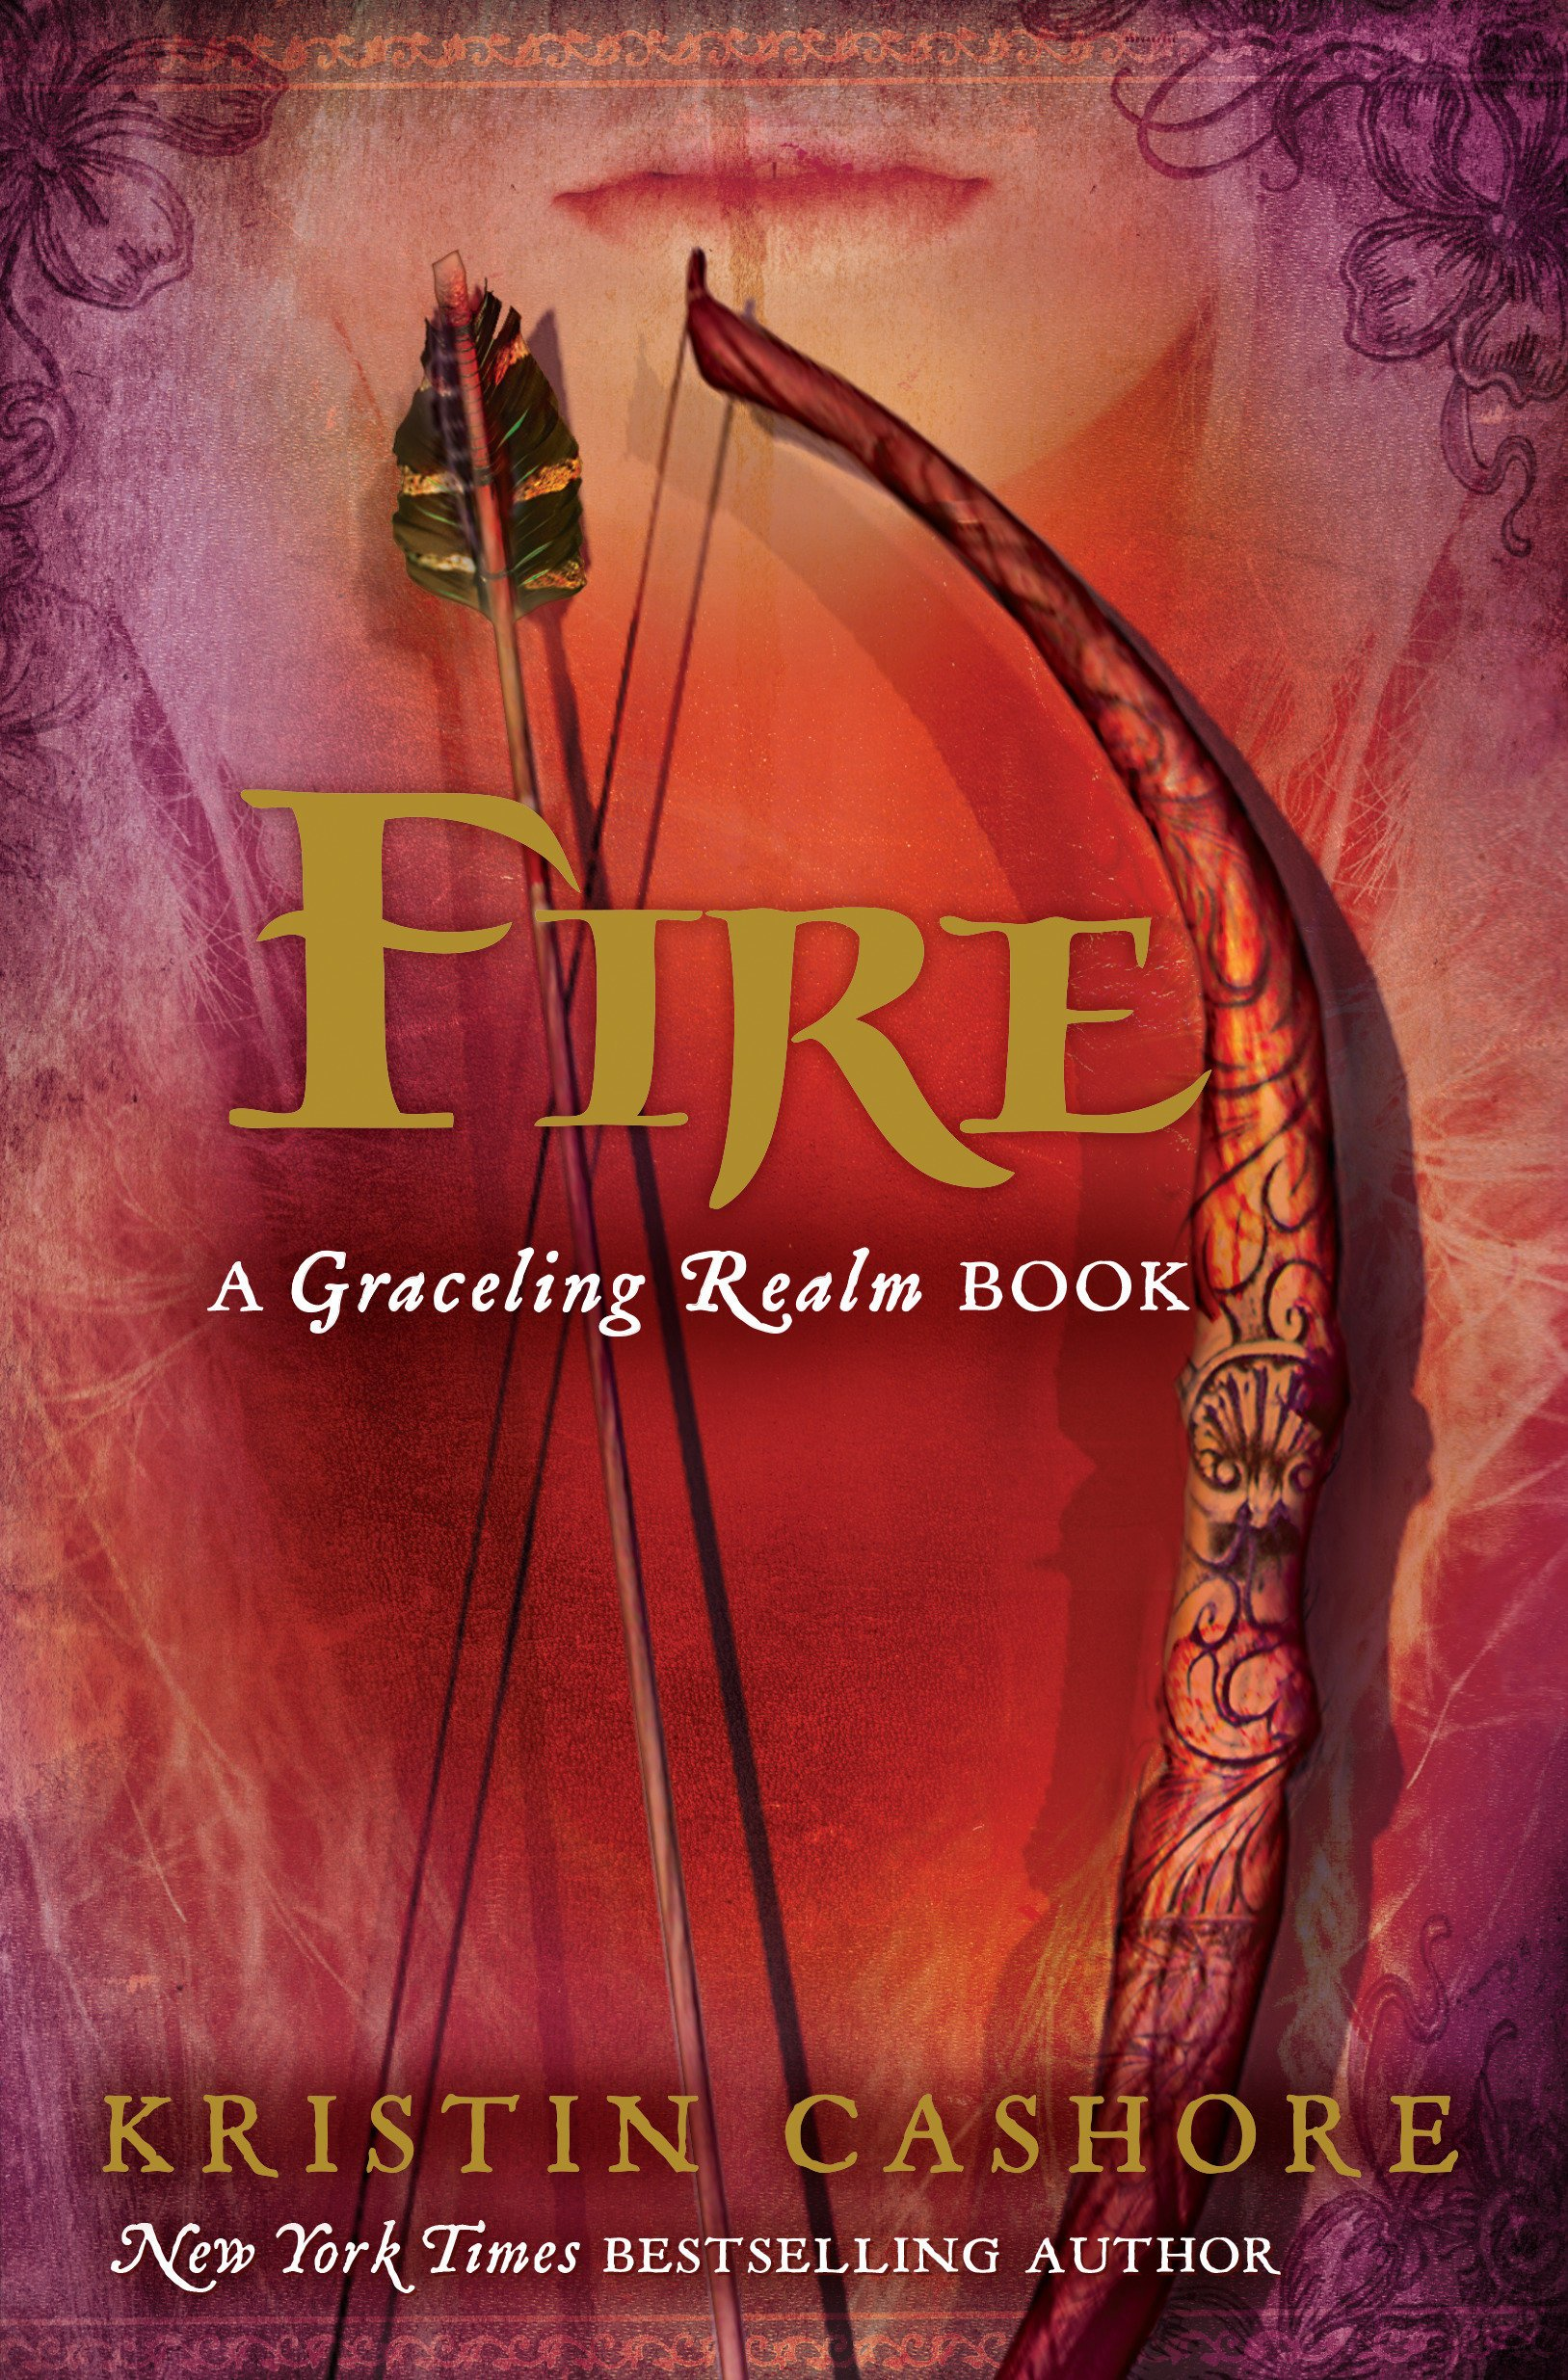 Image result for Fire by Kirstin Cashore""